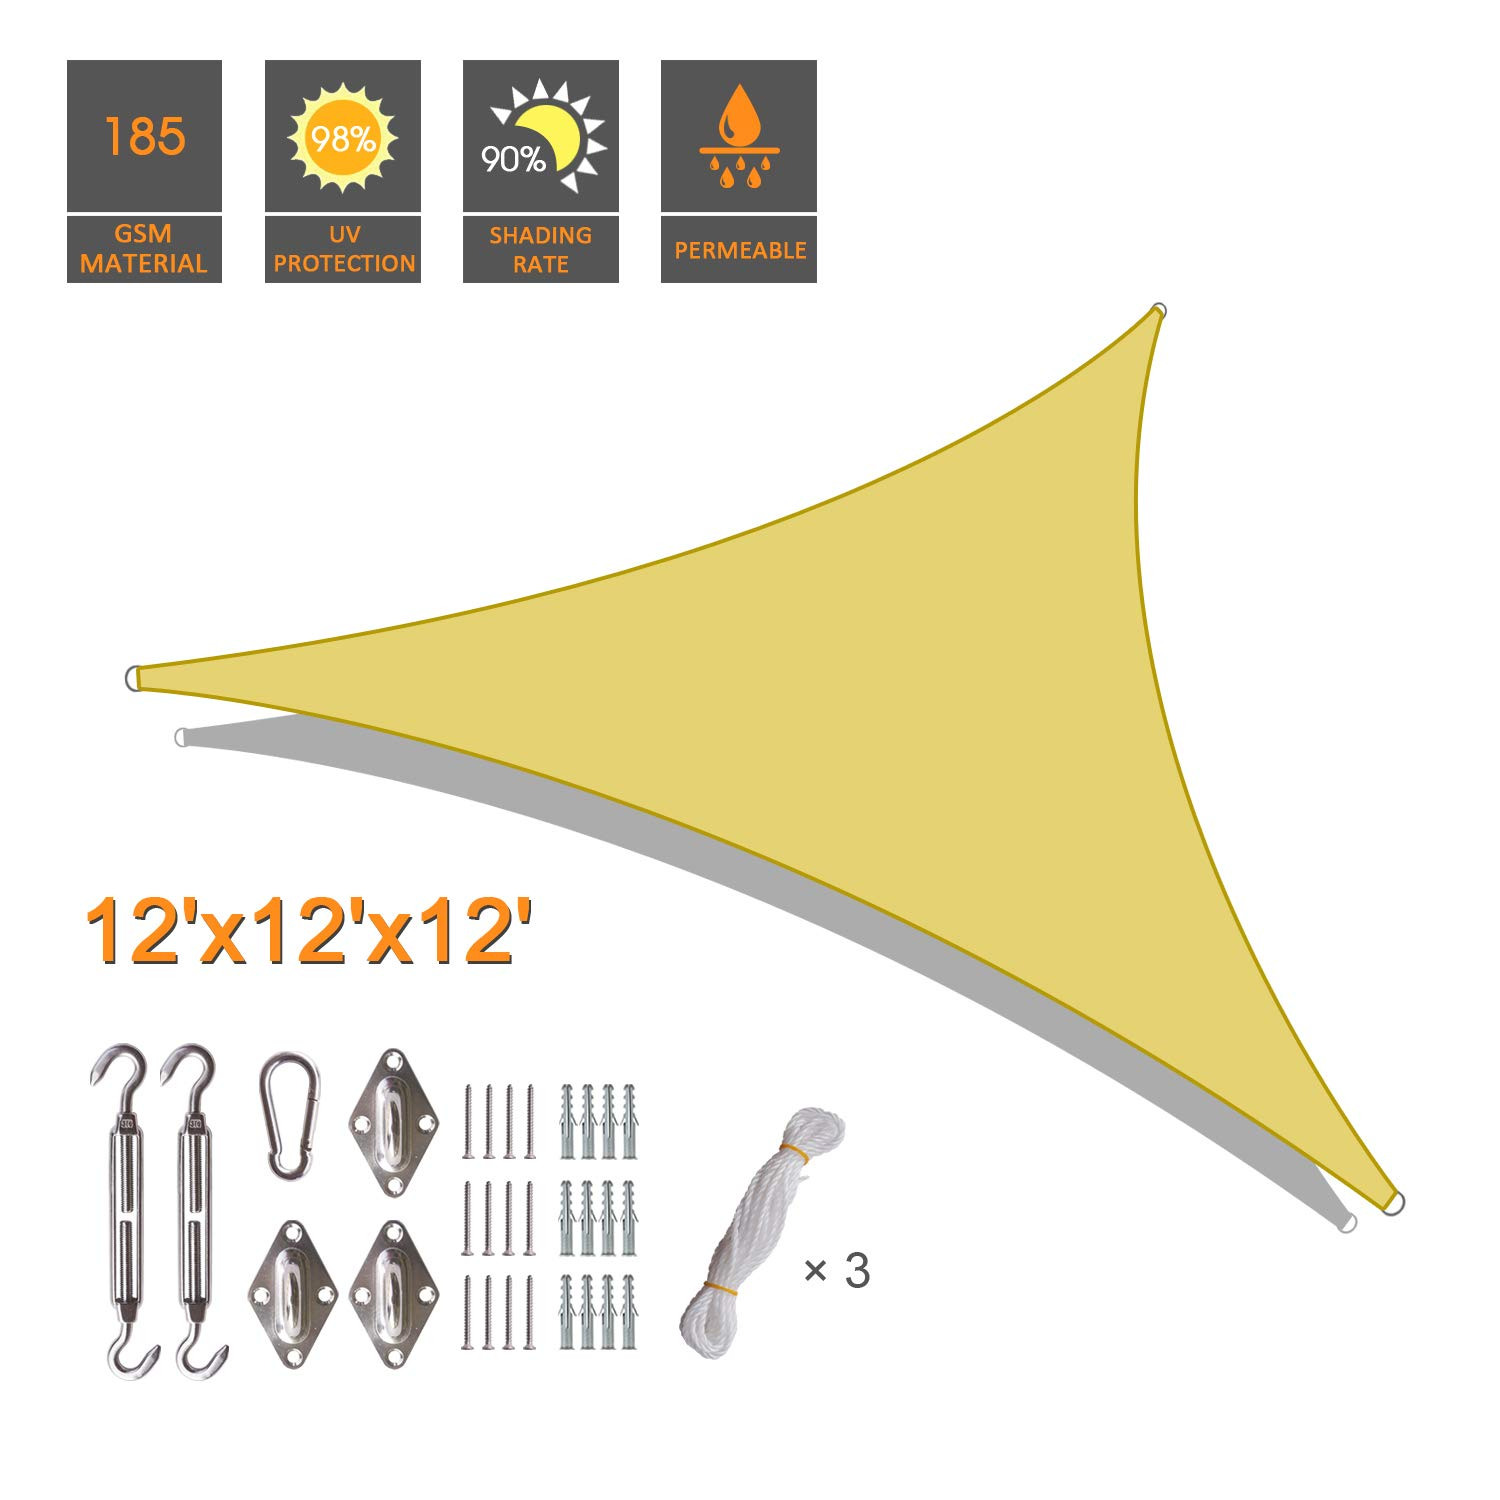 INVECH 12' x 12' x 12' Sand Triangle UV Block Sun Shade Sail with Hardware Kits, Perfect for Outdoor Patio Garden